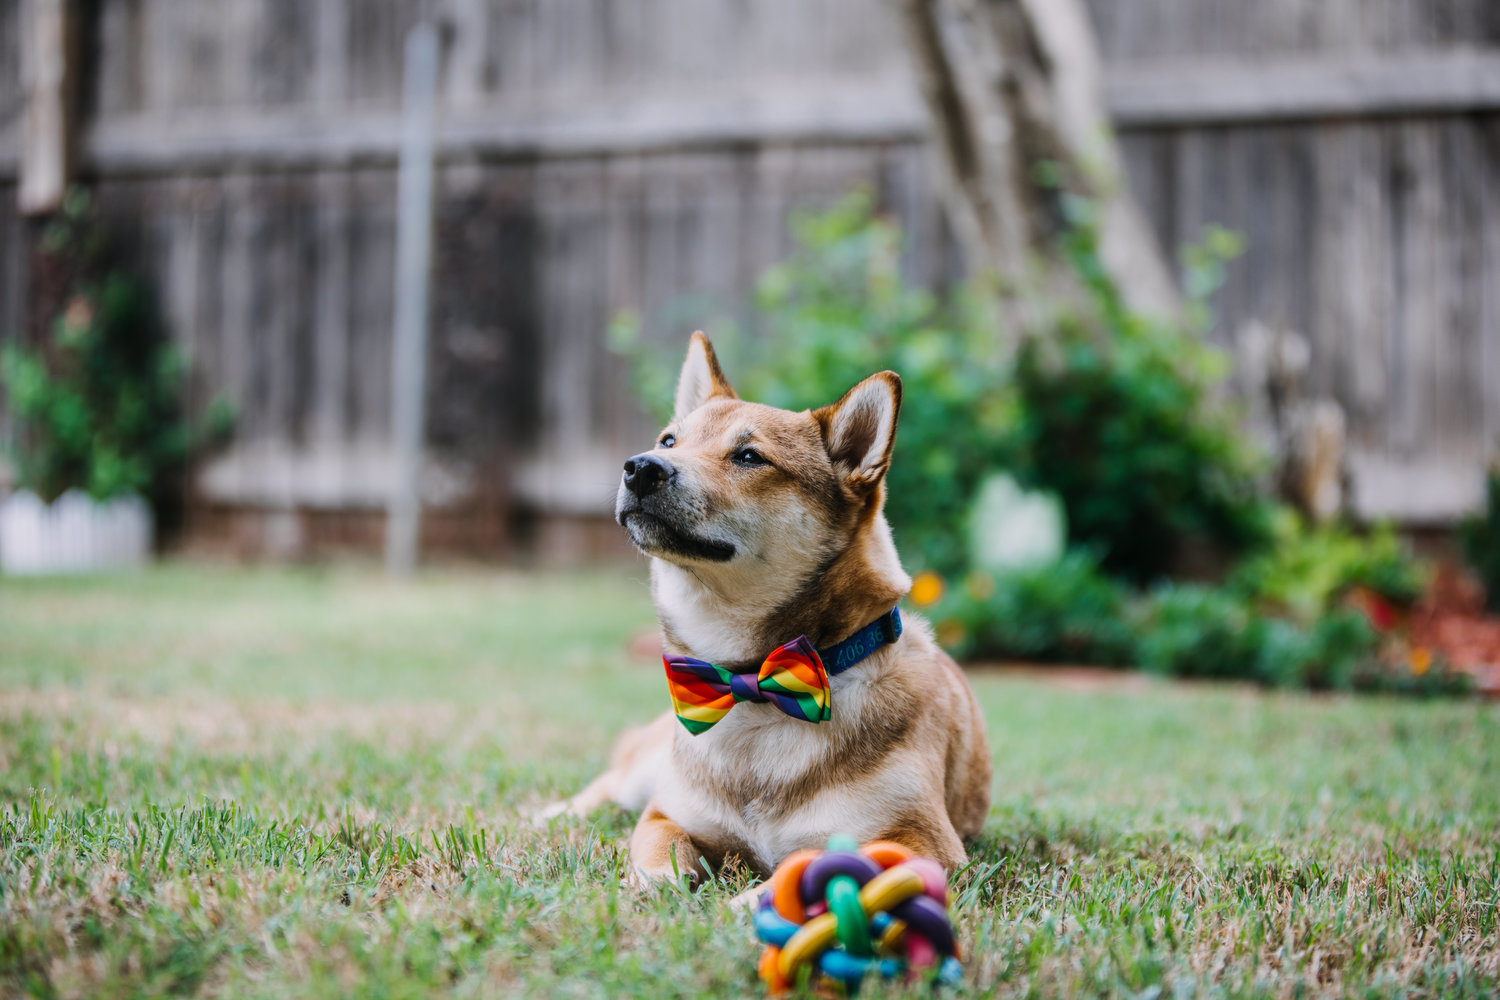 Calvin - He's a fierce ally for the LGBTQIA community. And probably too smart for his own good. (Shiba Inu)